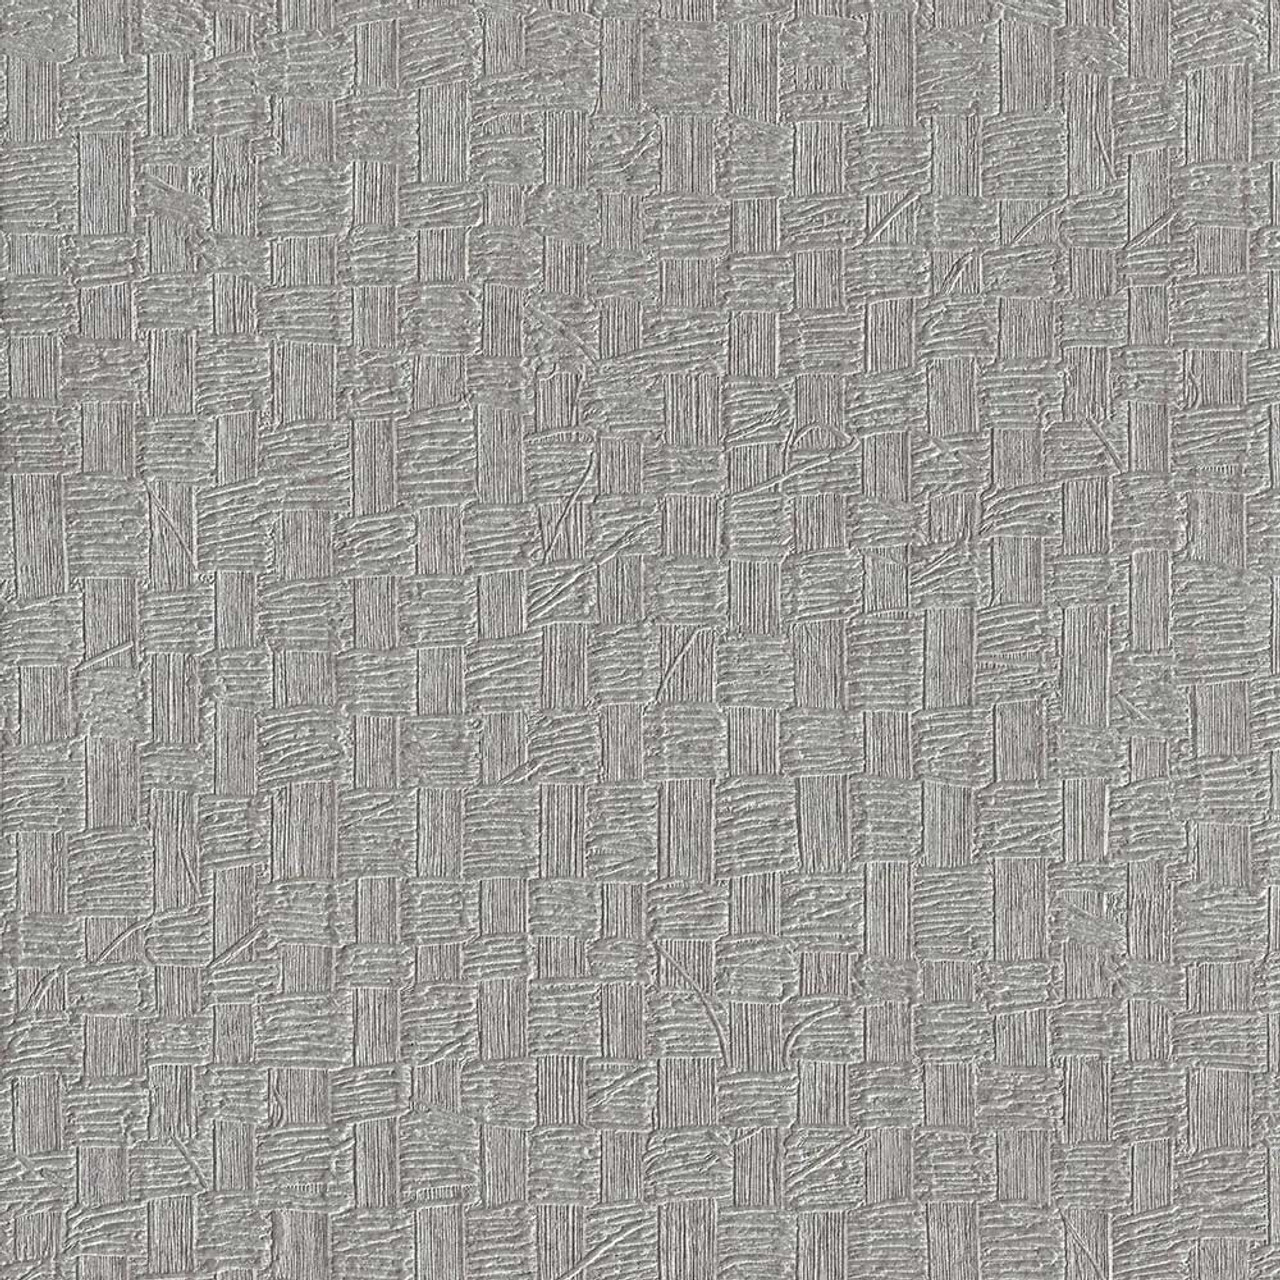 Woven Basket Wallpaper Metallic Gray